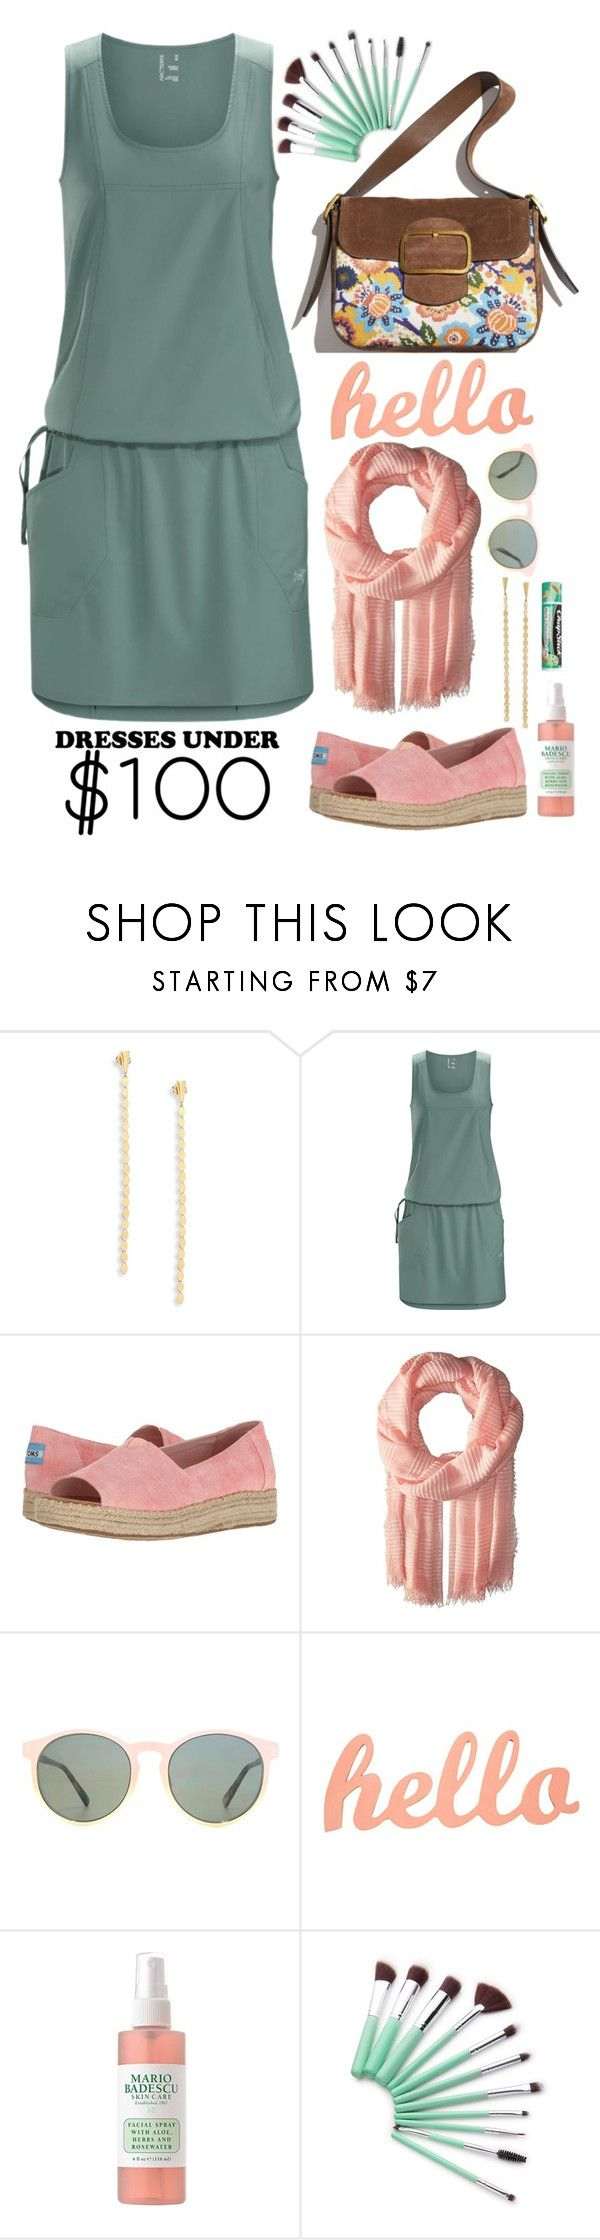 """Dresses Under $100"" by lbite ❤ liked on Polyvore featuring Lana Jewelry, Arc'teryx, TOMS, Echo Design, HOOK LDN, Chapstick and under100"